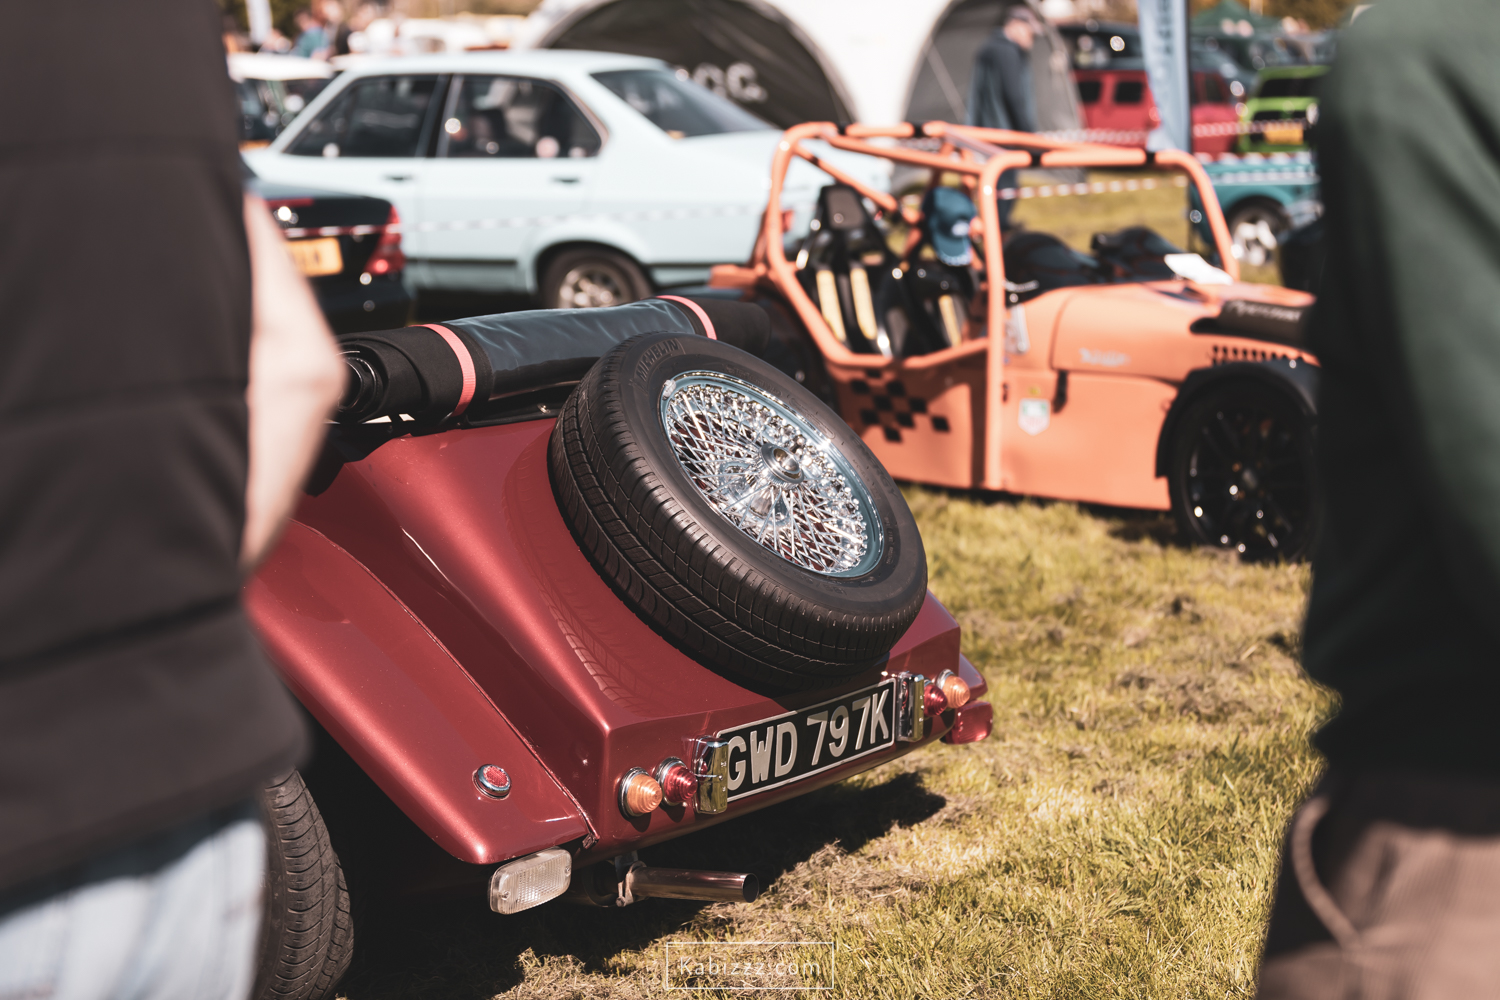 Kabizzz_Photography_Stirling_District_Classic _cars-13.jpg